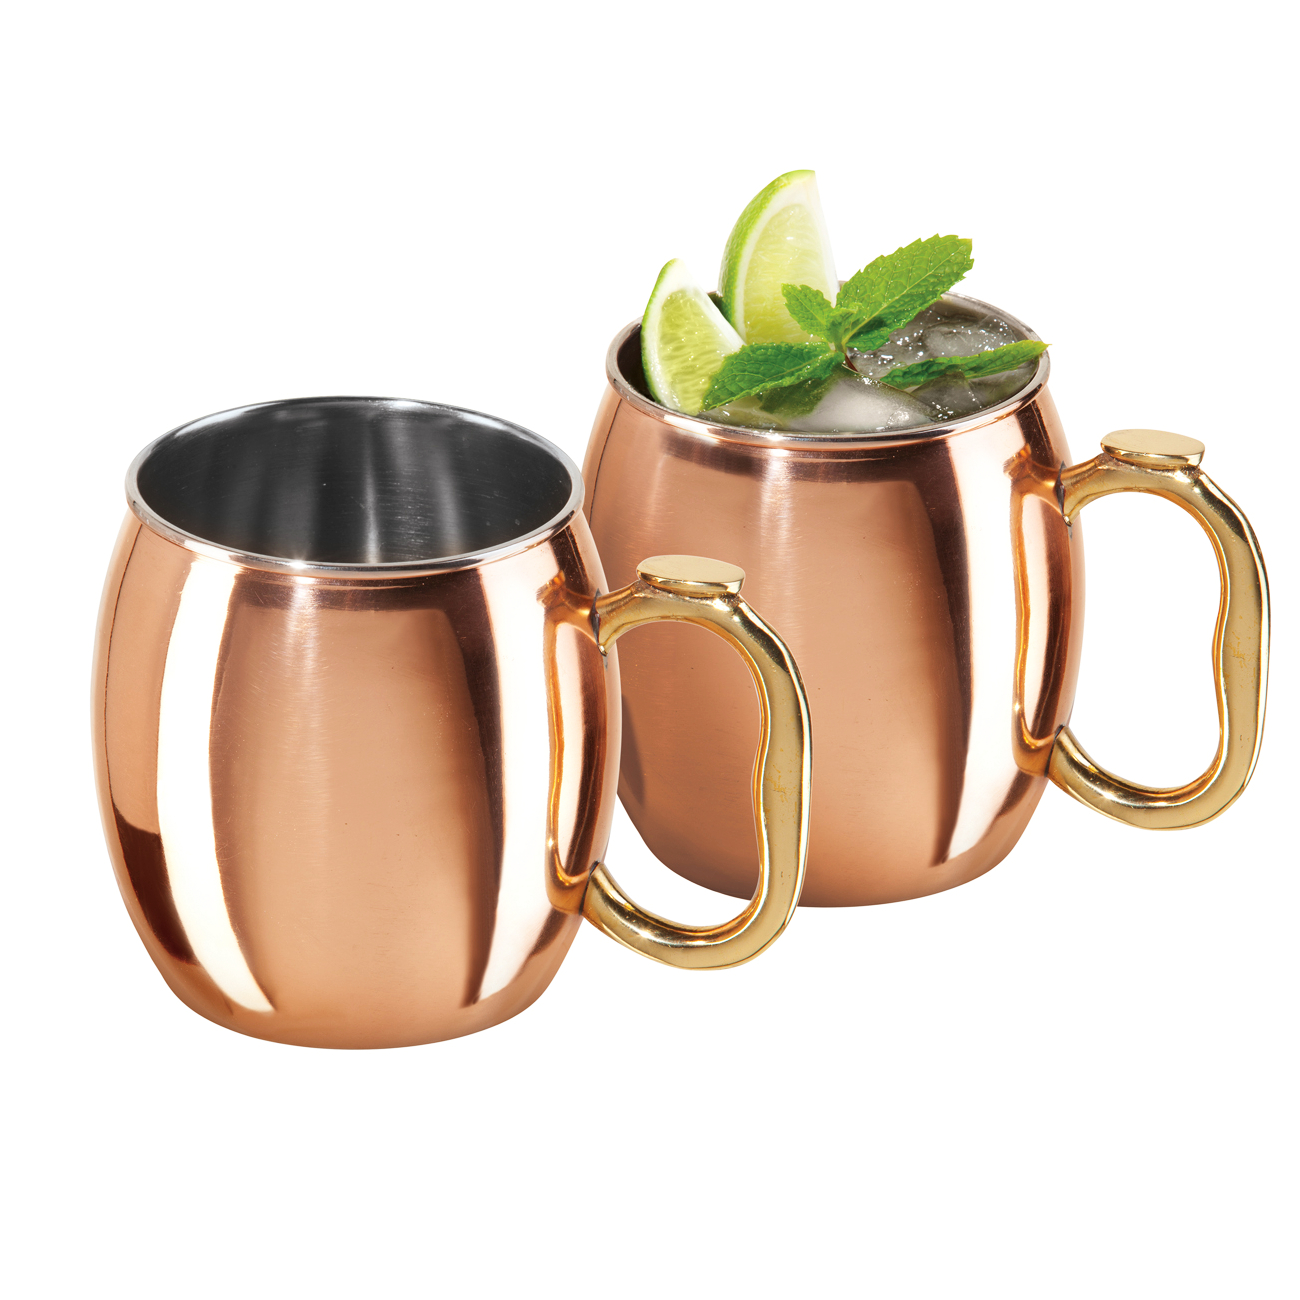 Oggi Moscow Mule Copper Plated Stainless Steel 20 Ounce Mug, Set of 2